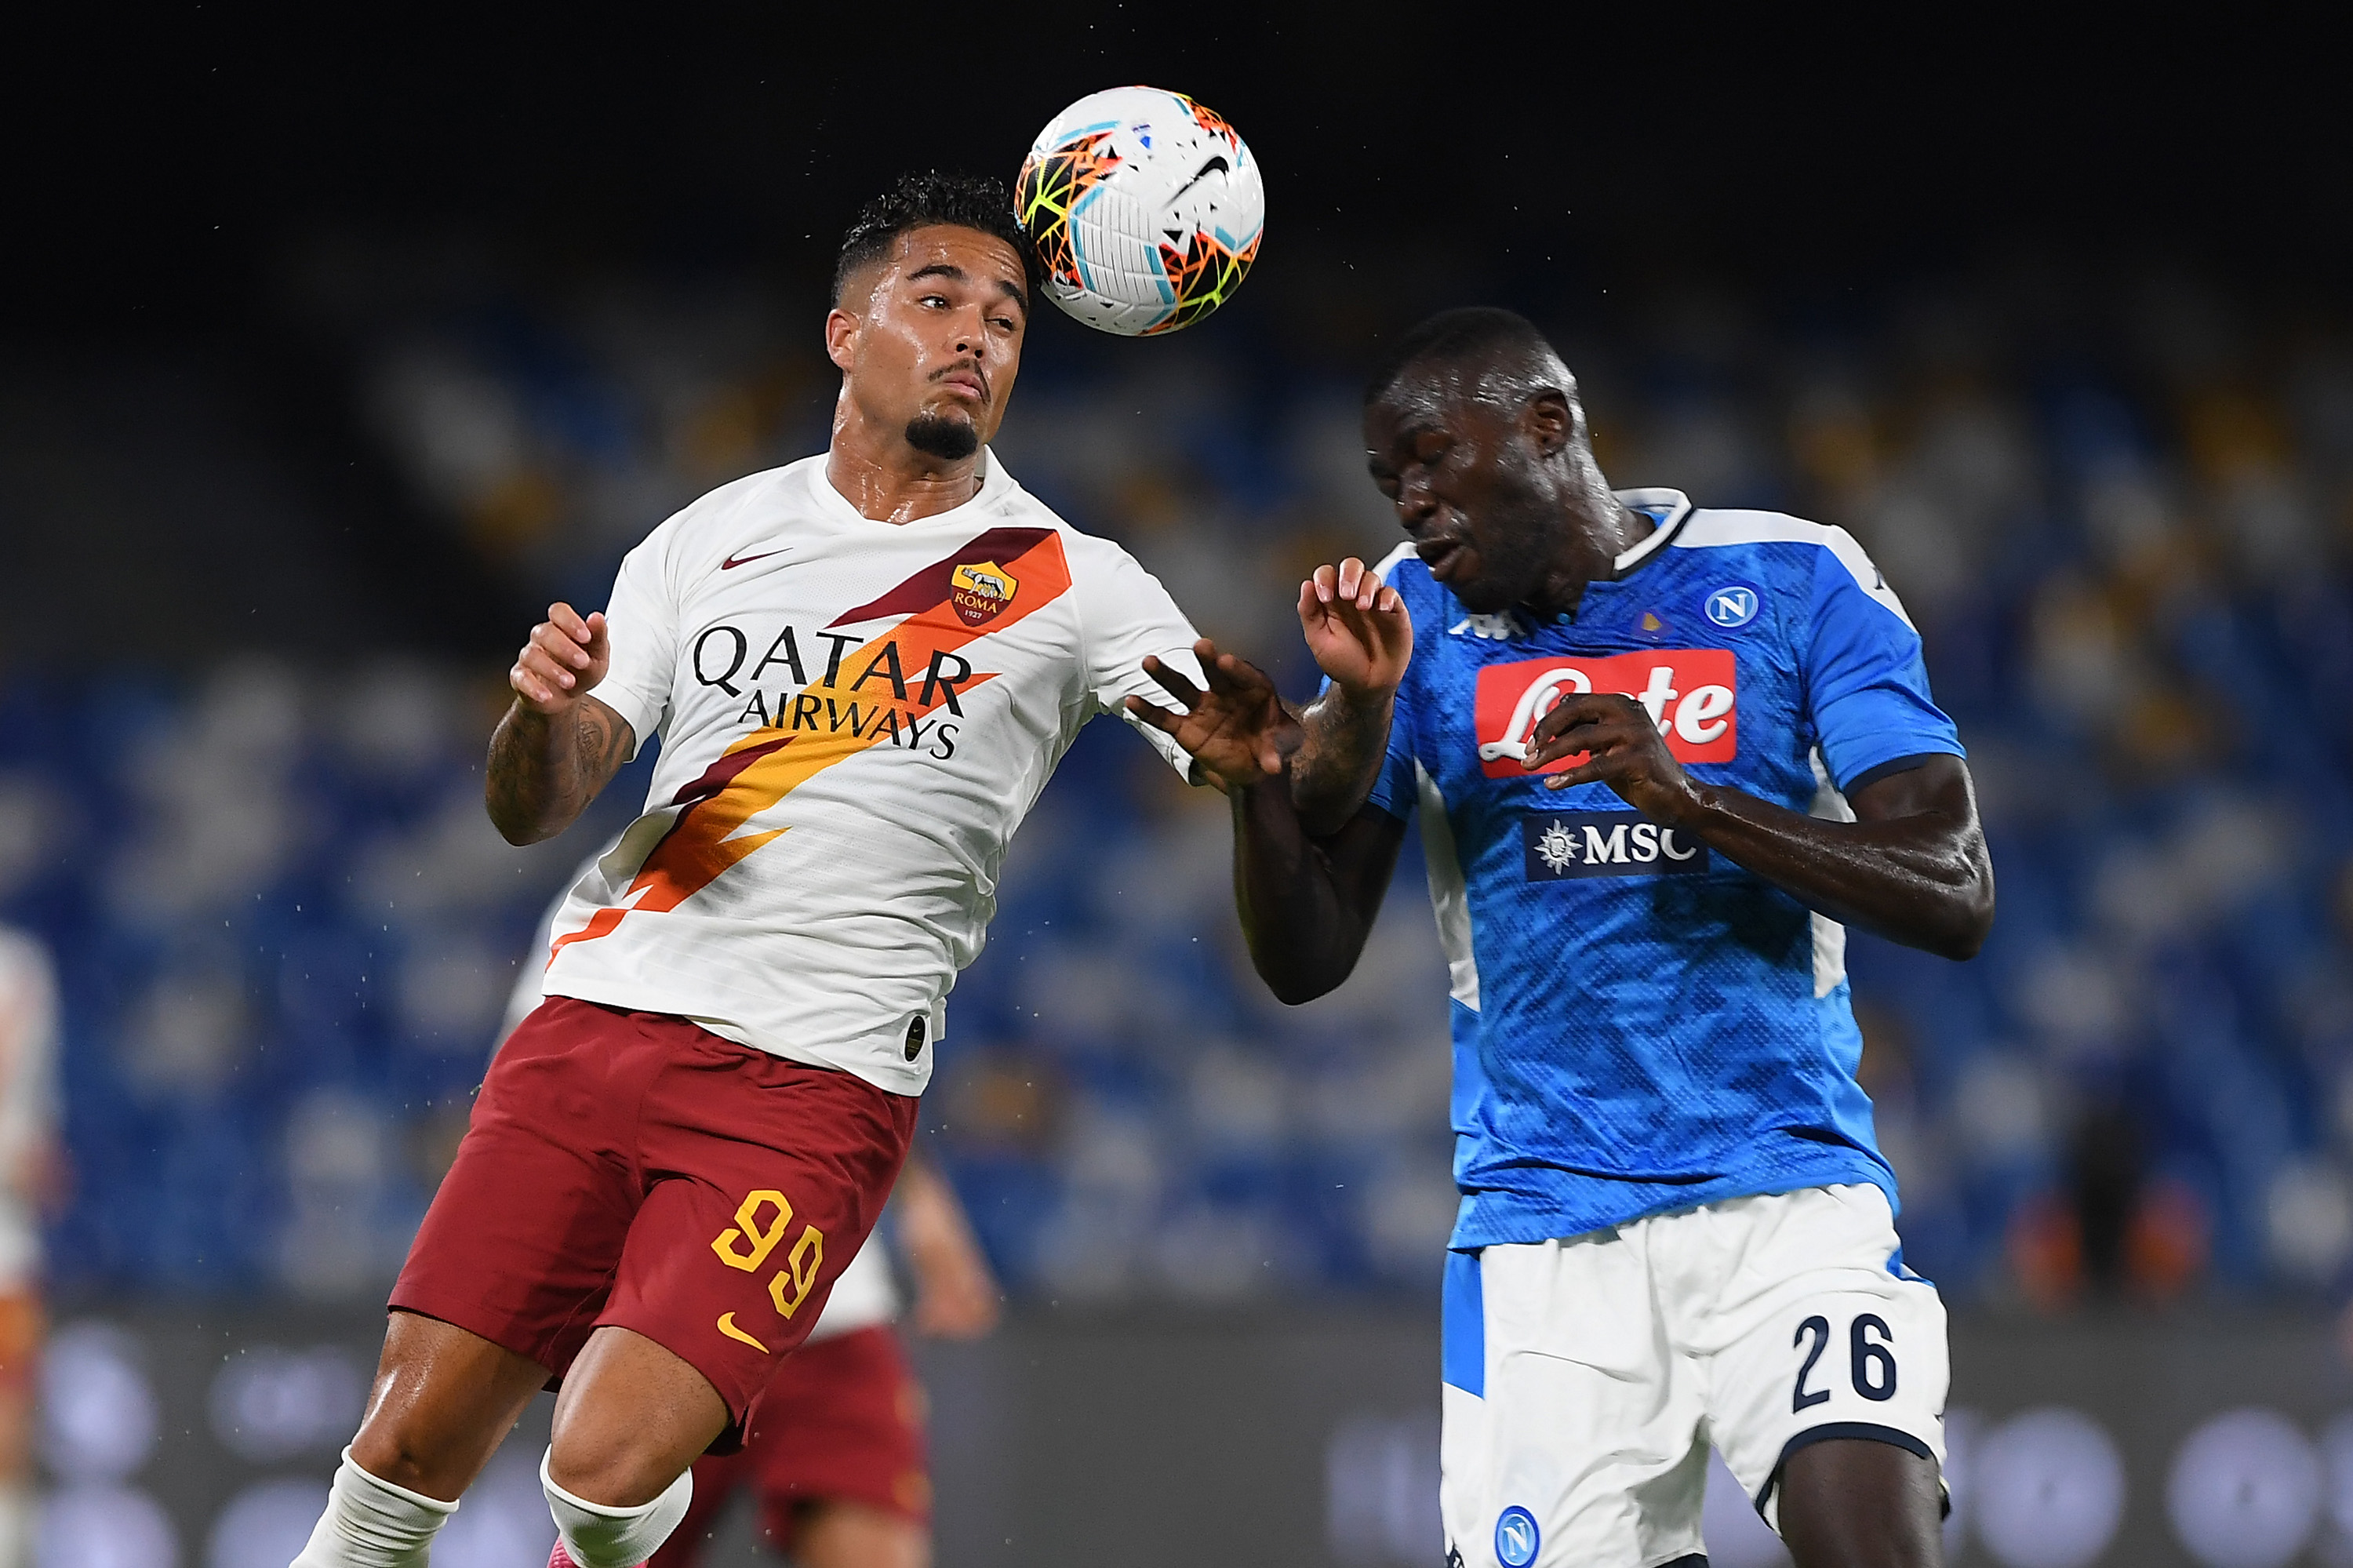 Kalidou Koulibaly prepared to join Manchester City this summer (Koulibaly is seen in the picture)